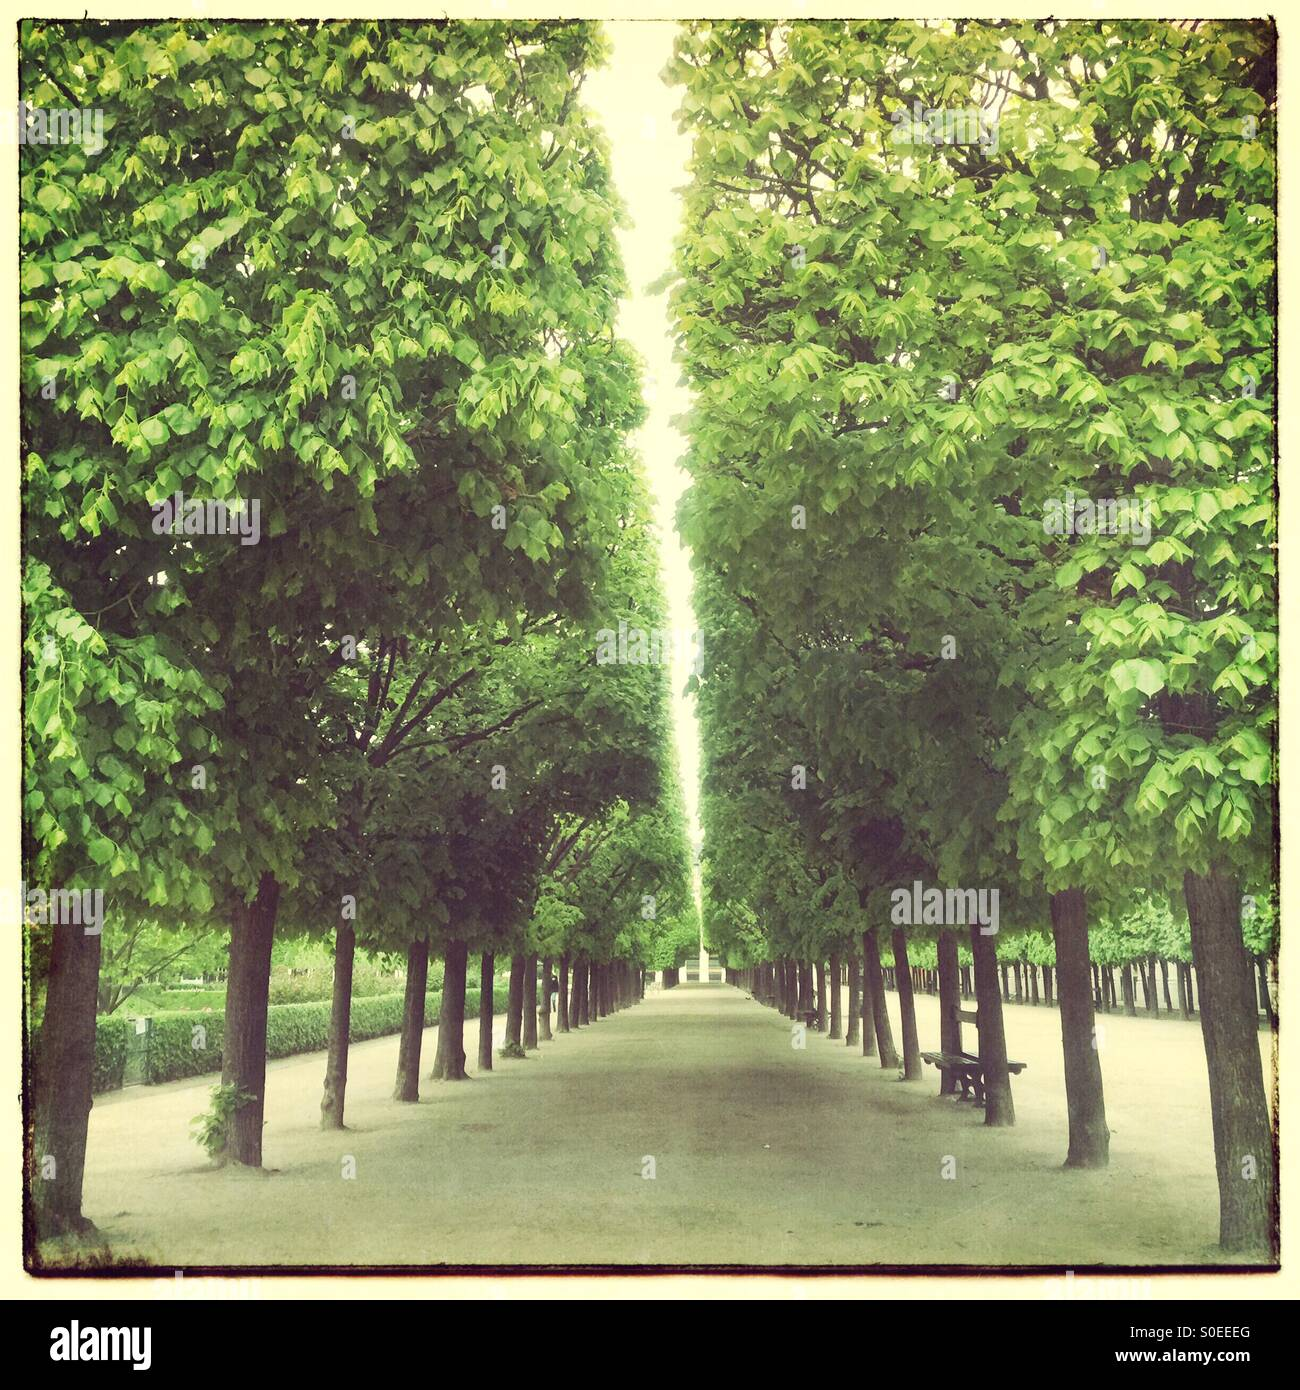 Rows of trees at Jardin du Palais-Royal in Paris, France. Vintage frame and warm, retro, faded look. - Stock Image